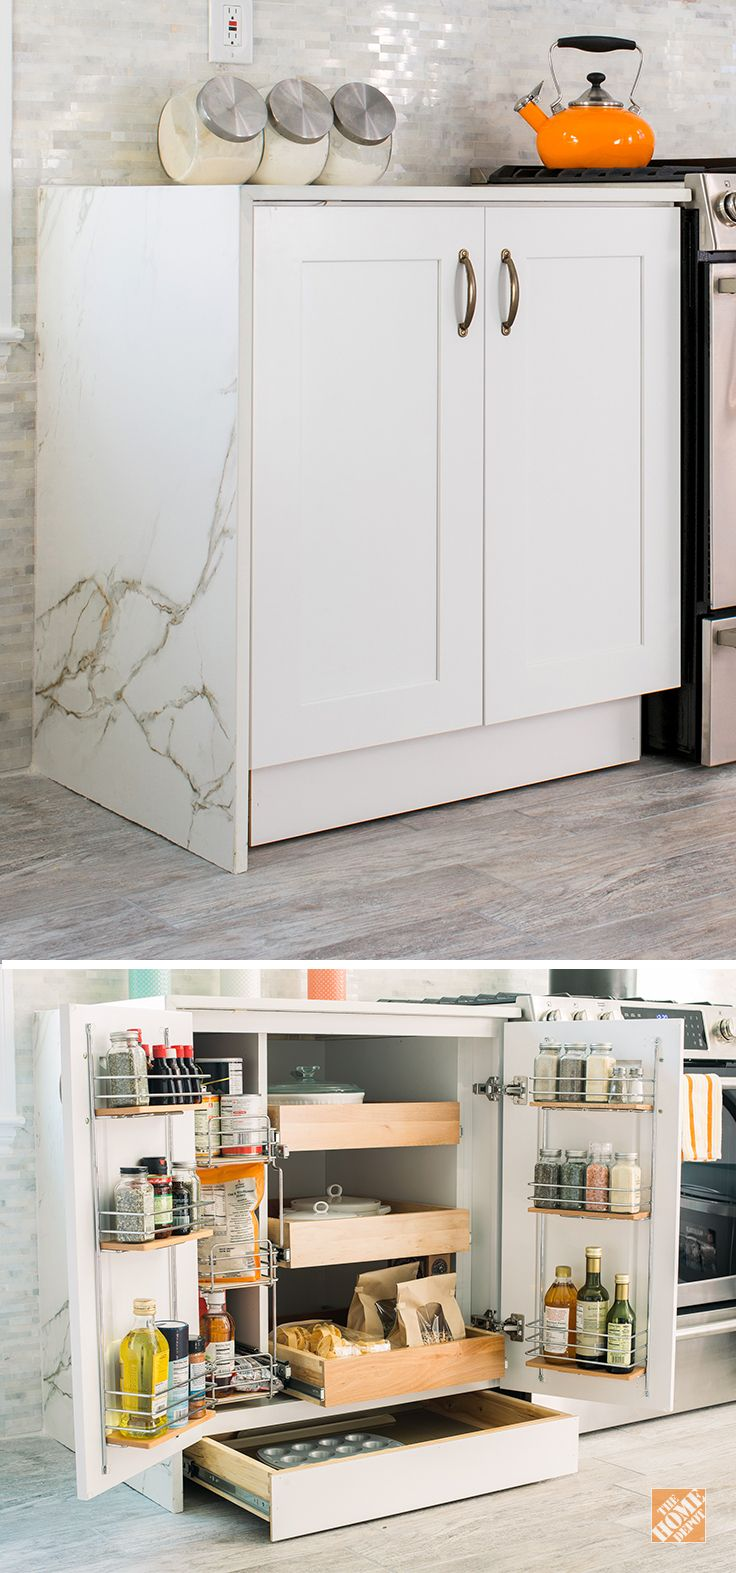 Keep cooking items out of sight and easily accessible with a Thomasville SuperCabinet. This is just one kitchen storage option you can choose when you remodel your kitchen with Thomasville Cabinets. Click through to discover more innovative solutions for your kitchen makeover.